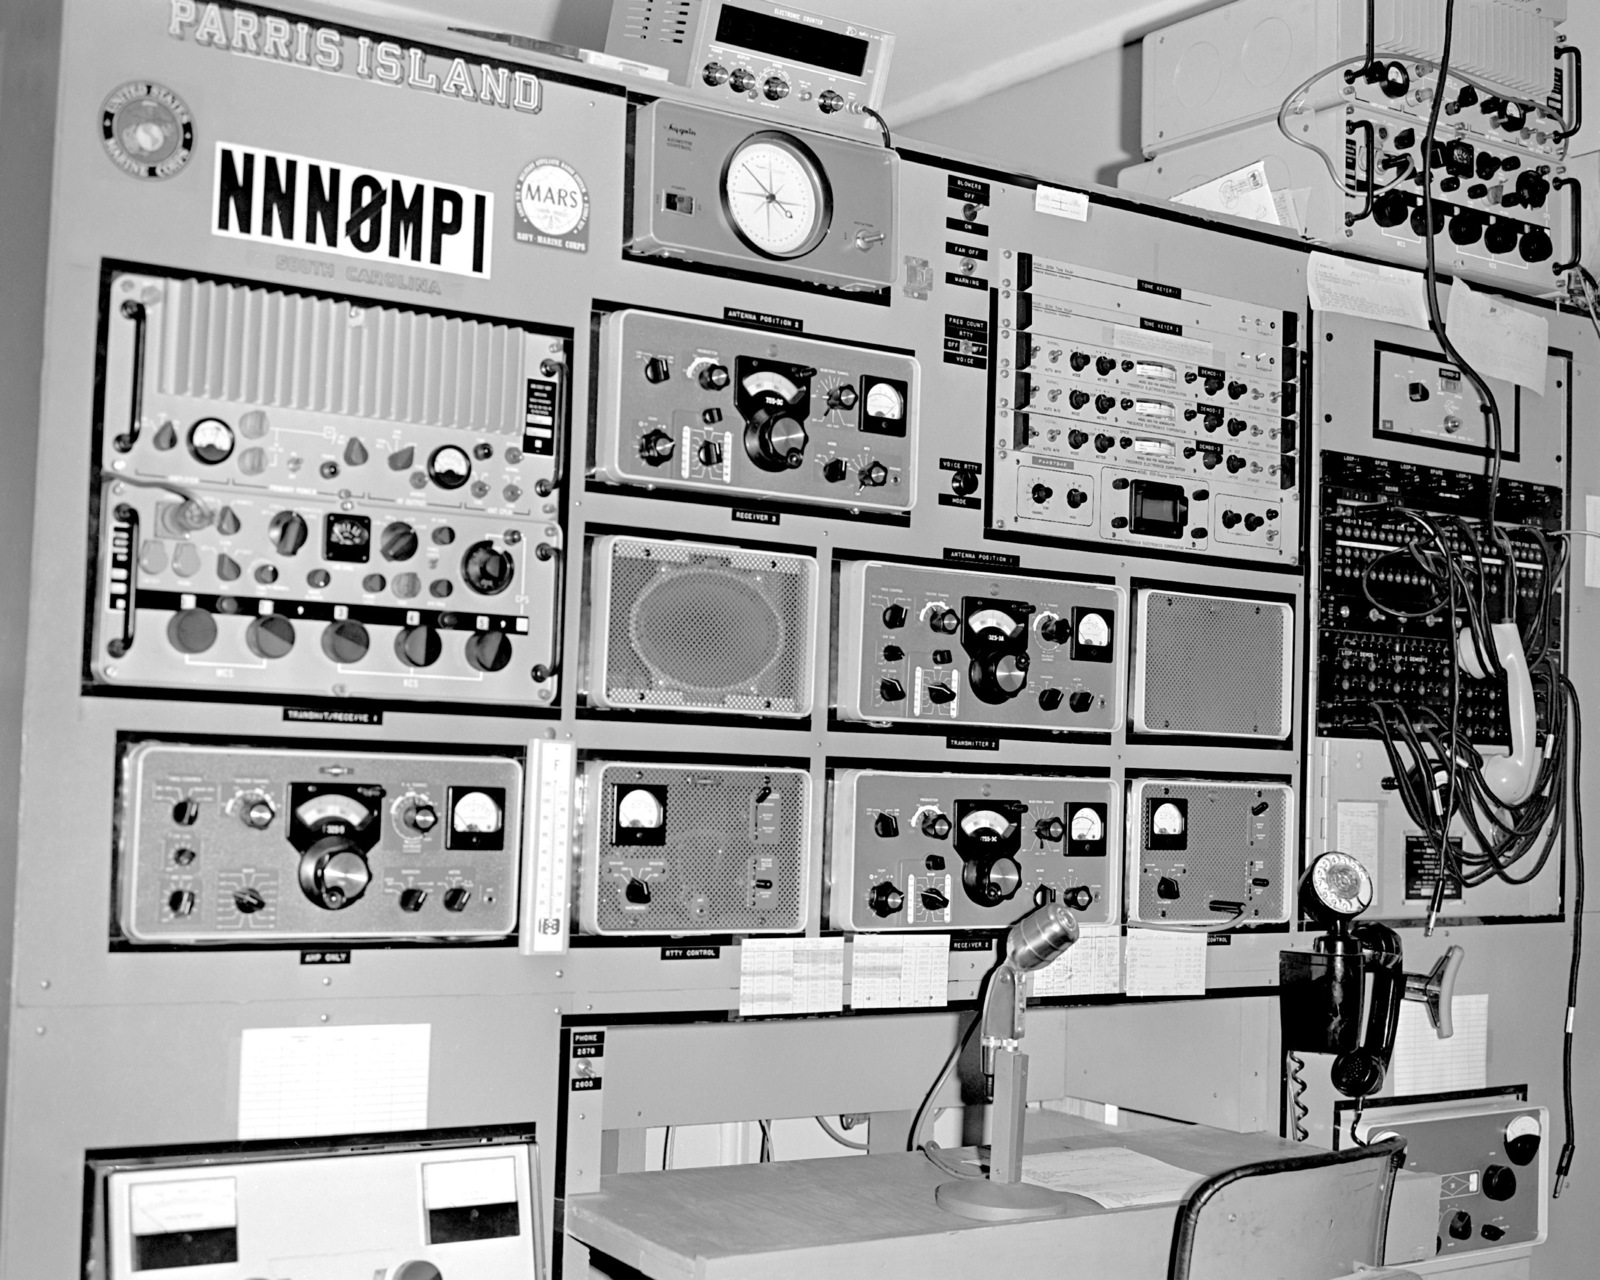 A wide angle view of the control console, including a URC-35 transmitter/receiver, part of the equipment located at the Military Affiliate Radio System (MARS) station